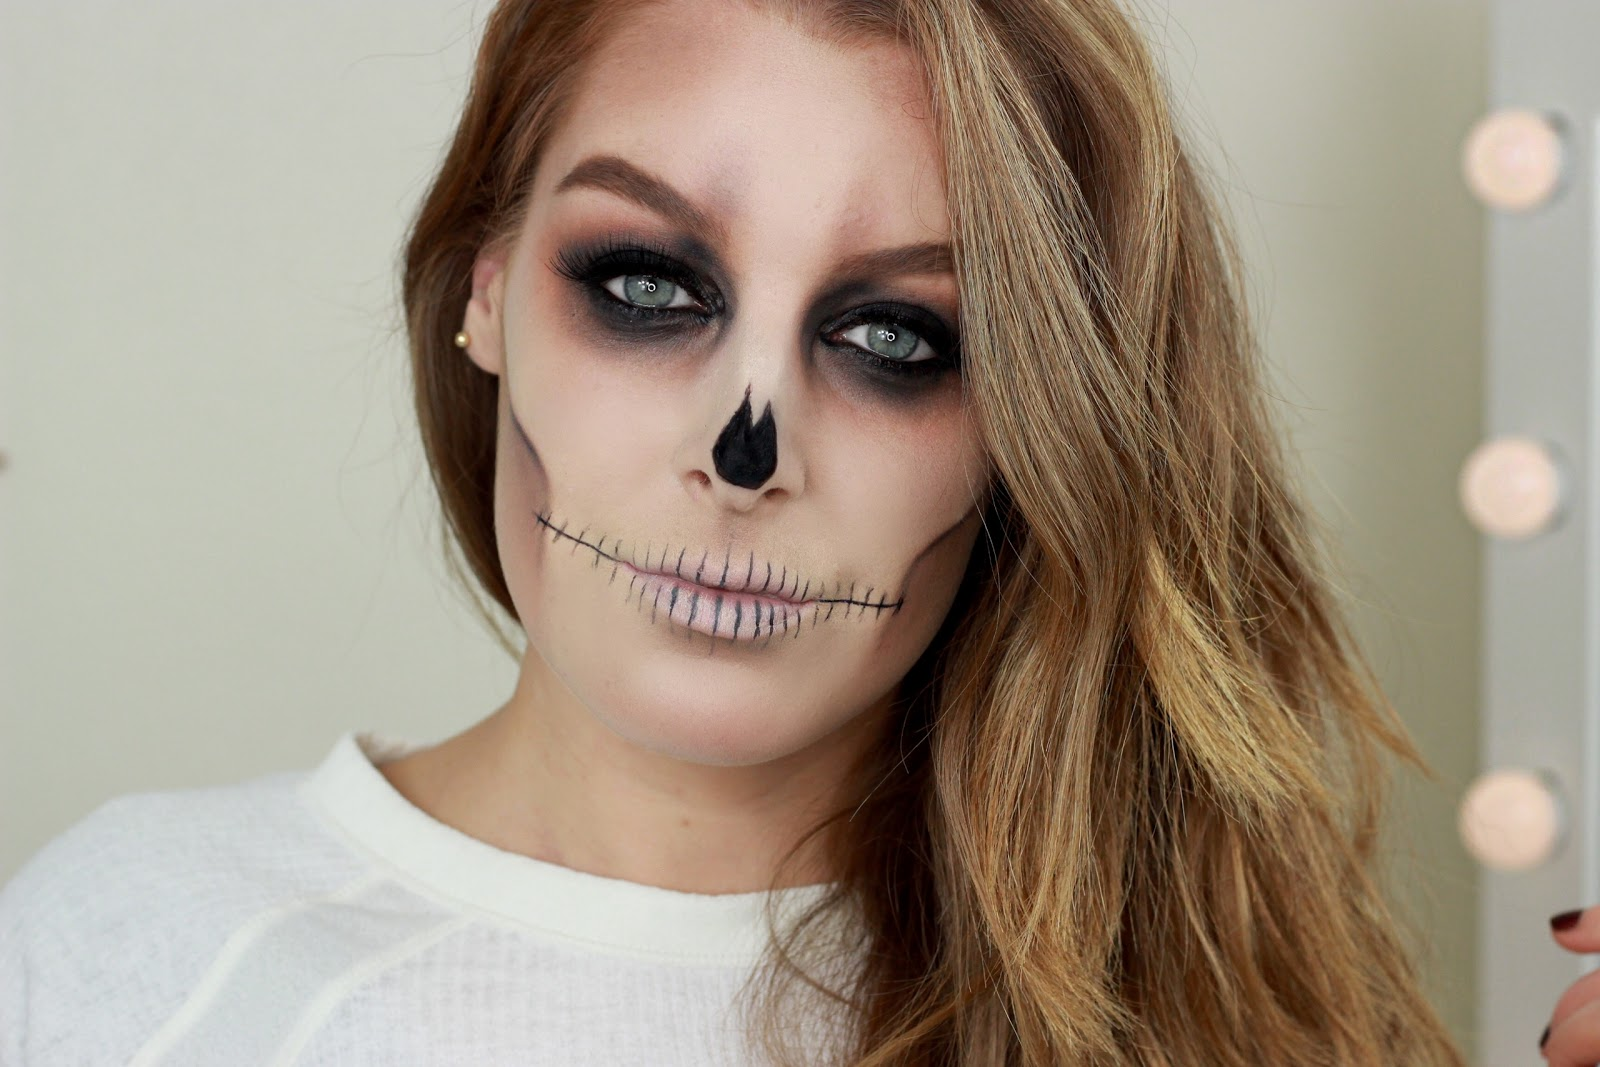 Skull Makeup Tutorial | Halloween Makeup | Zoe Mountford